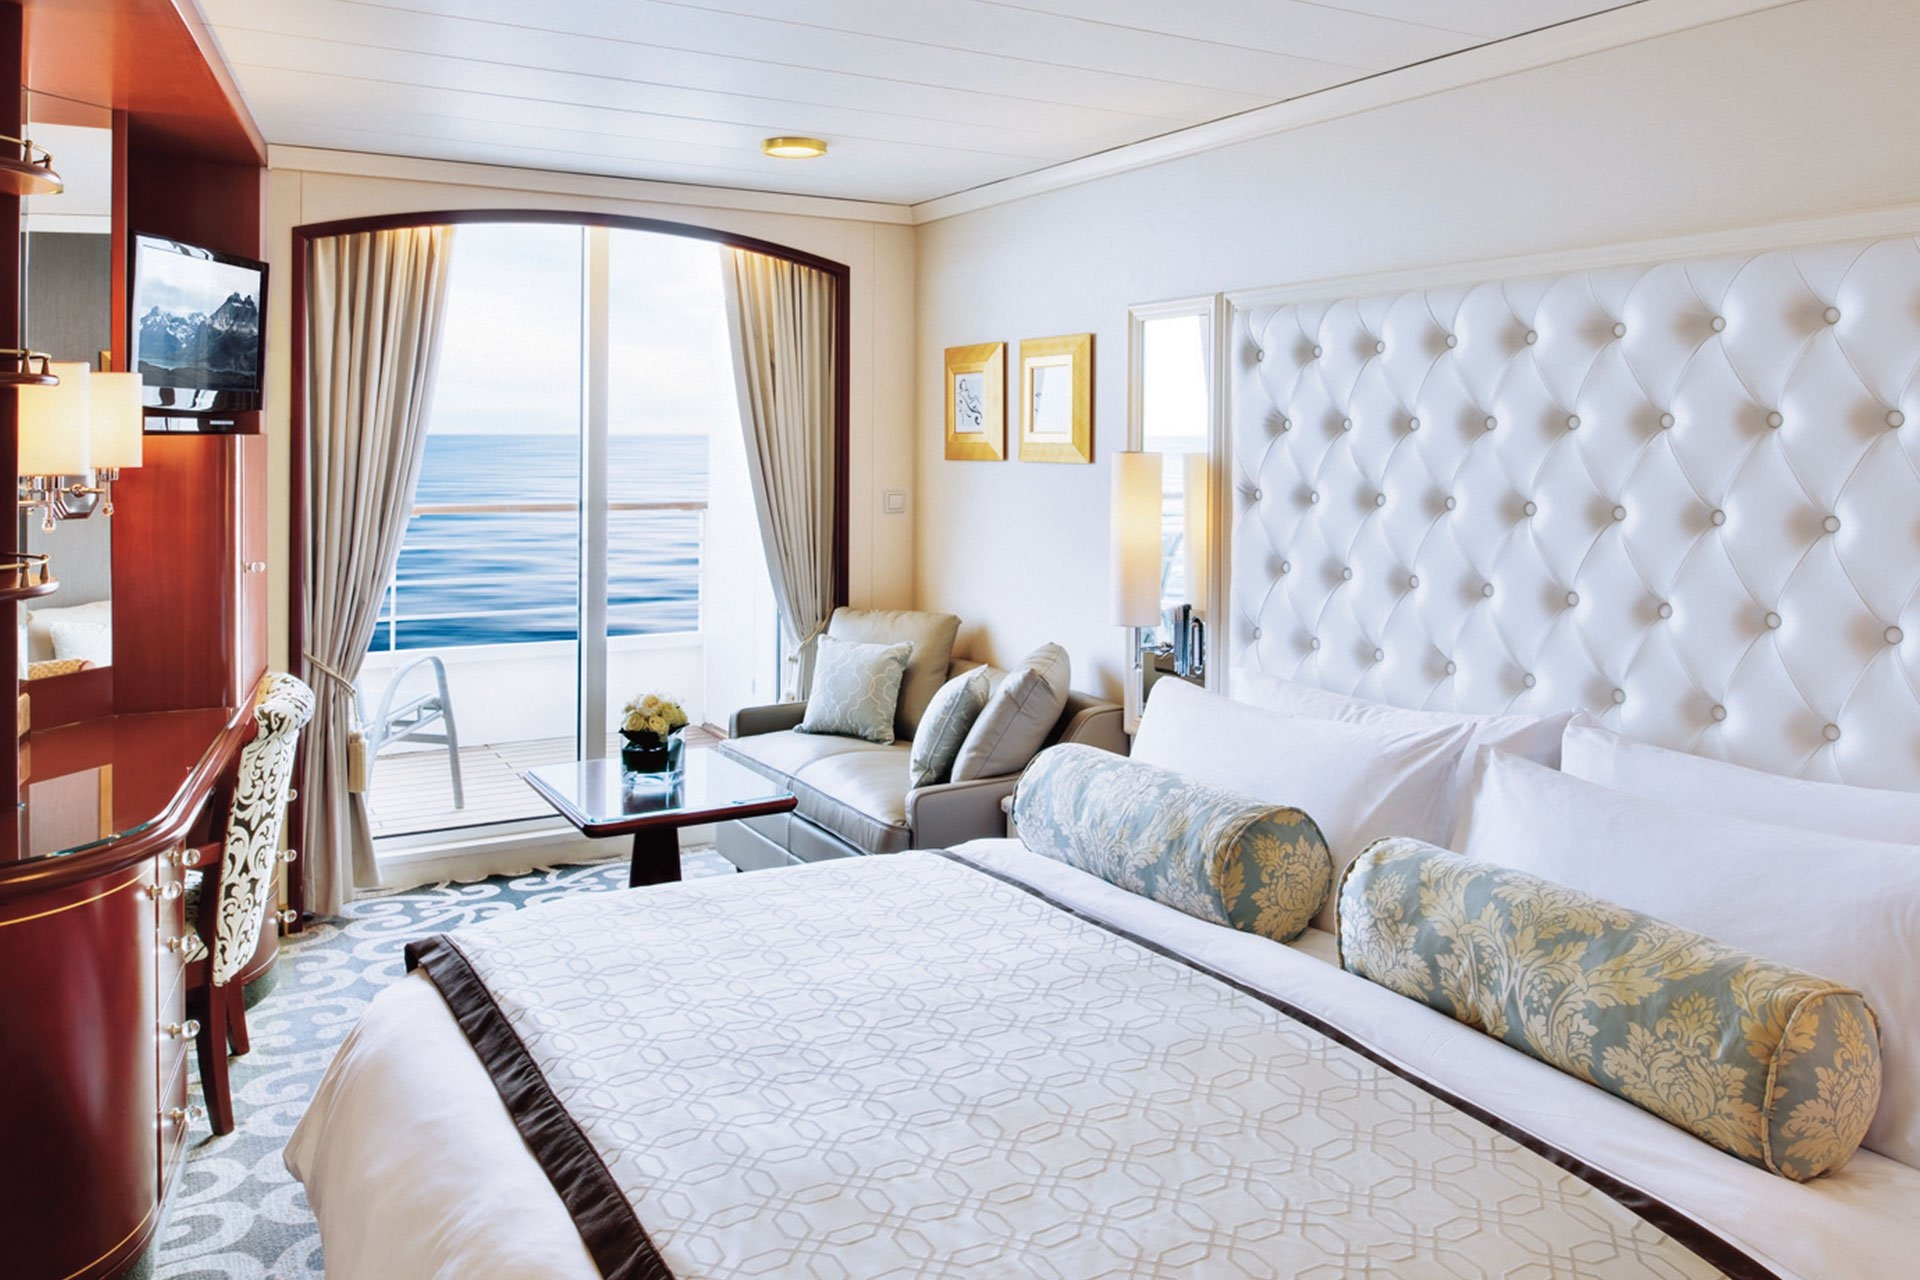 Deluxe Stateroom with Verandah Slightly Limited View